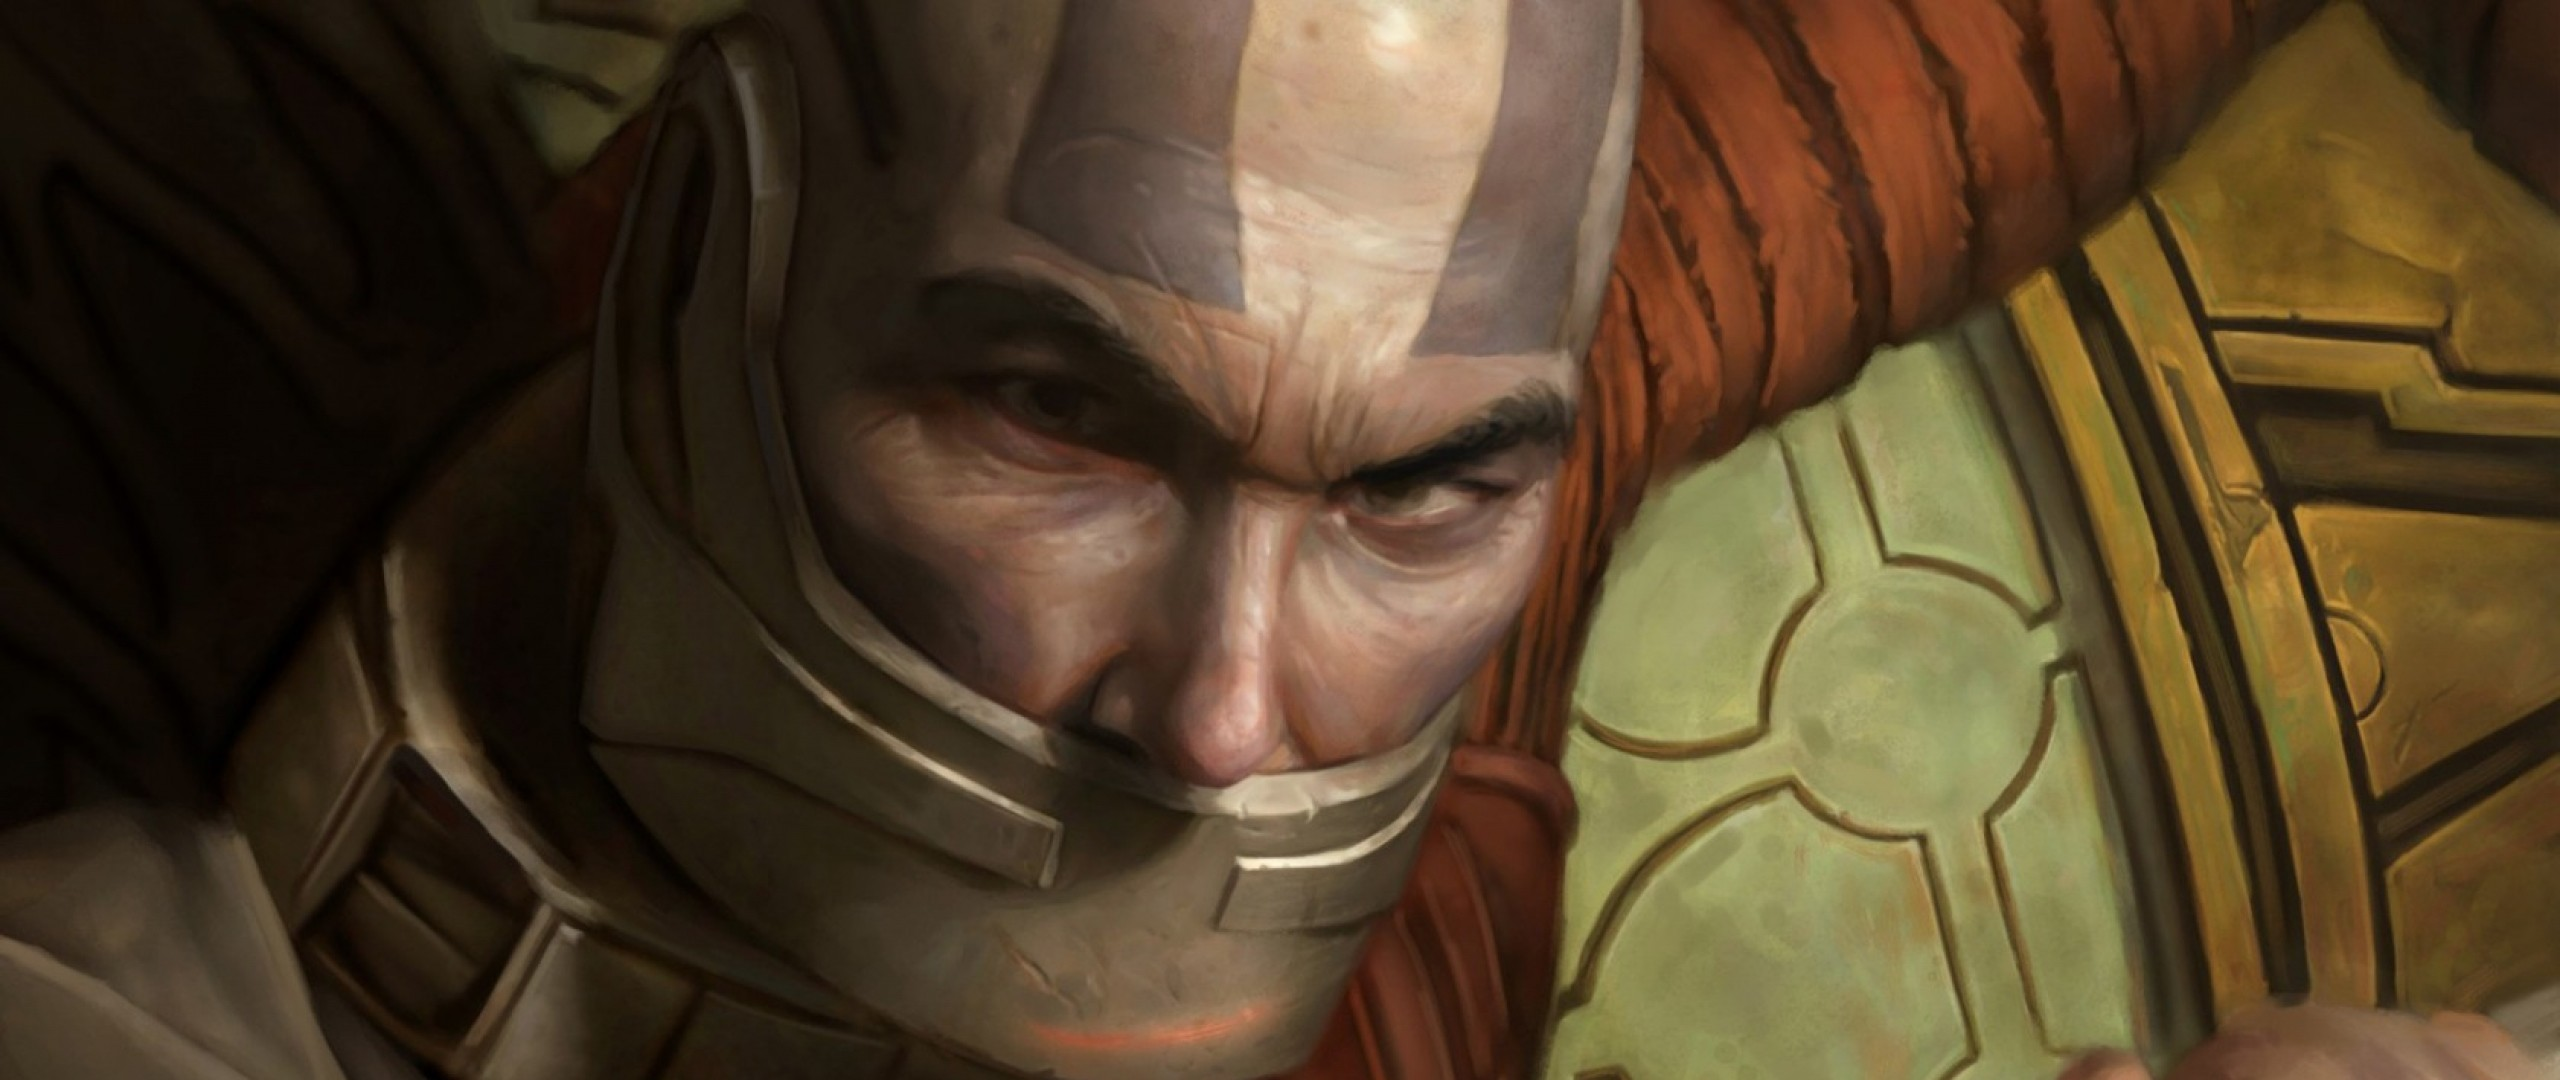 Preview wallpaper star wars, knights of the old republic, man, sword, weapon